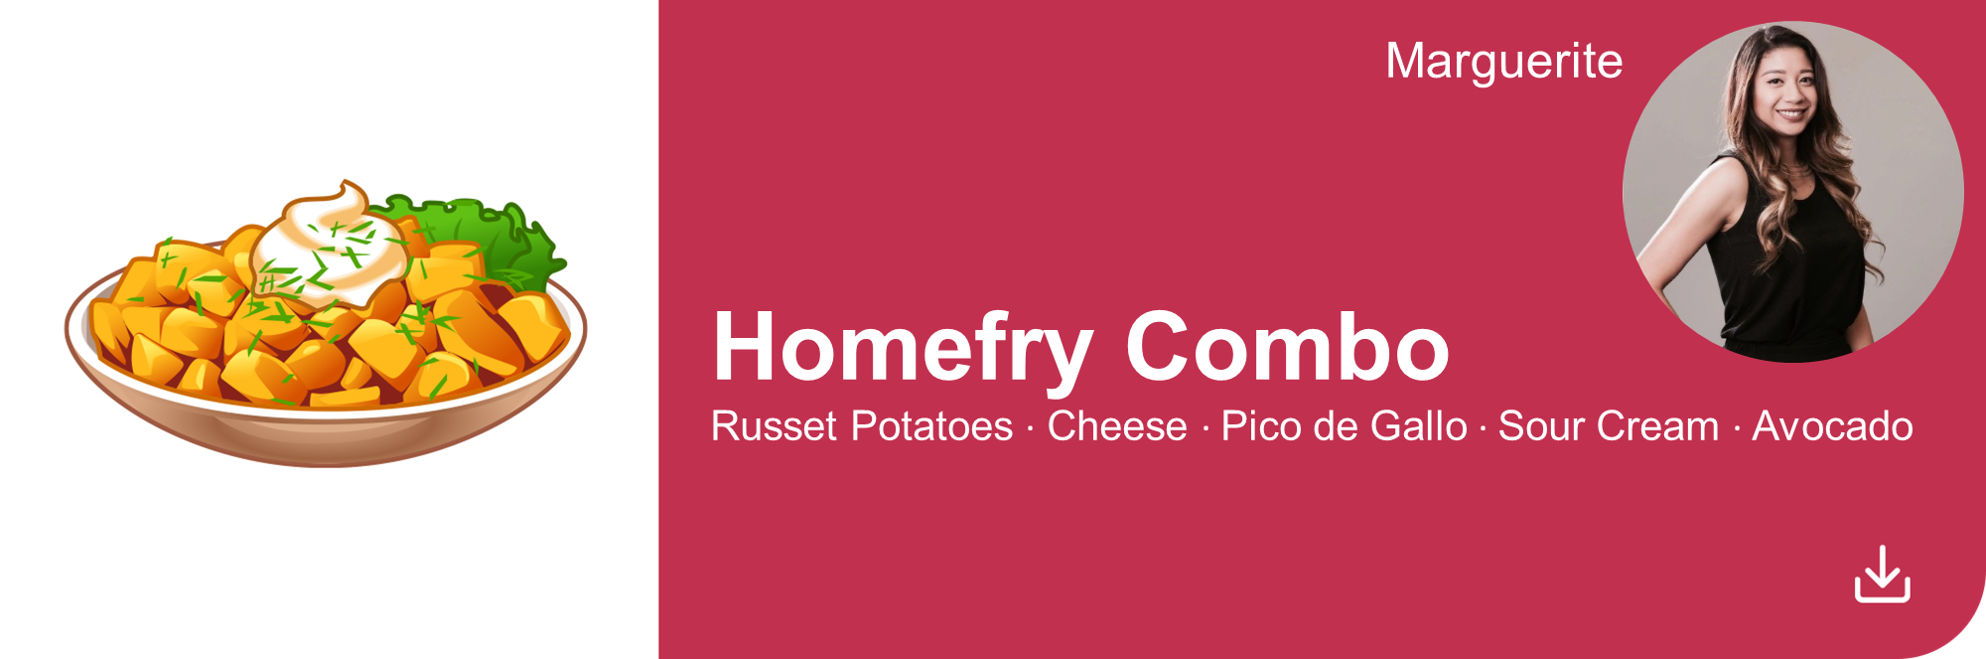 Creative Marketing Concepts_QuarantineAndChill_Comfort Food Edition_Homefry Combo_Marguerite new